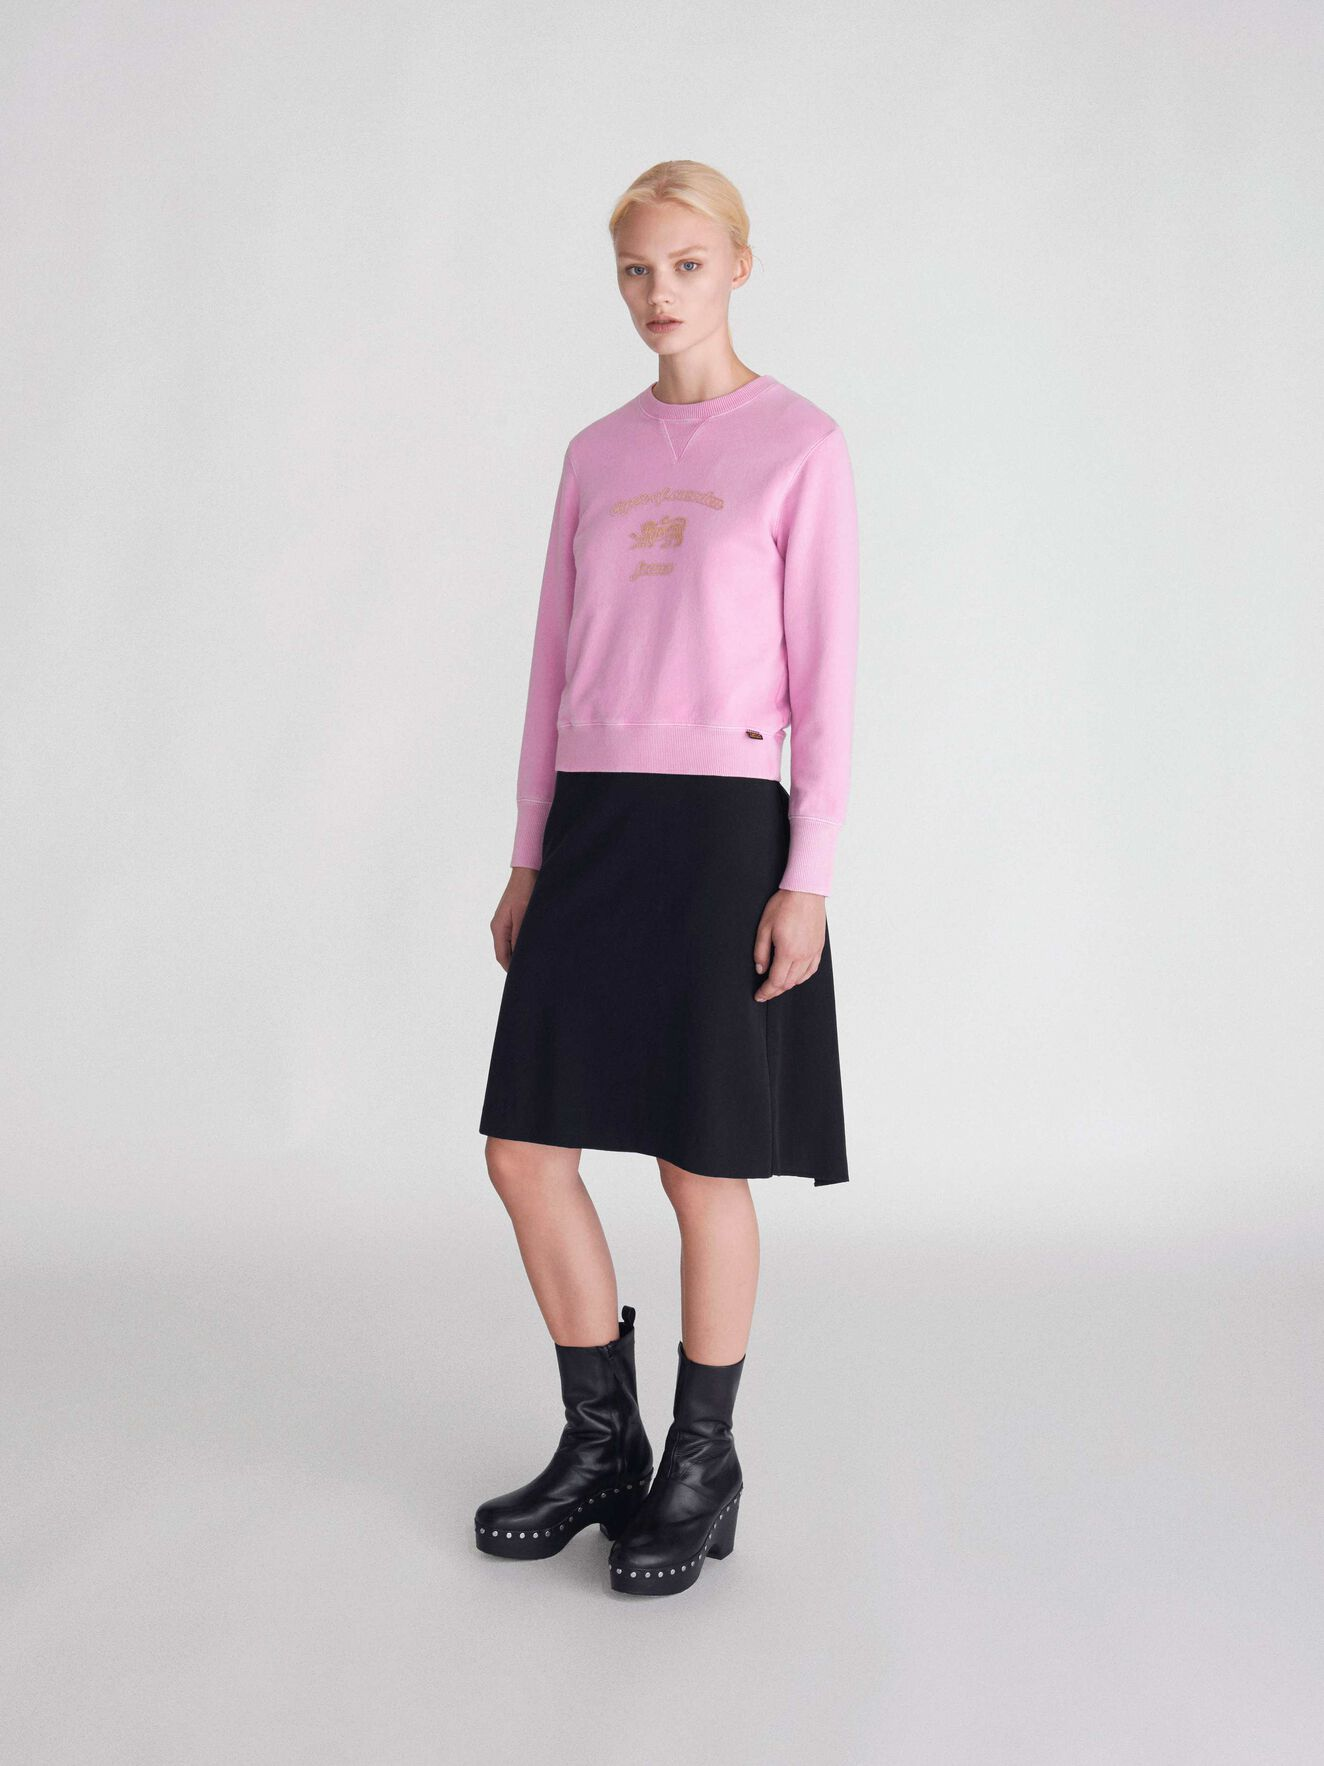 Obscura Pr Sweatshirt in Pink from Tiger of Sweden